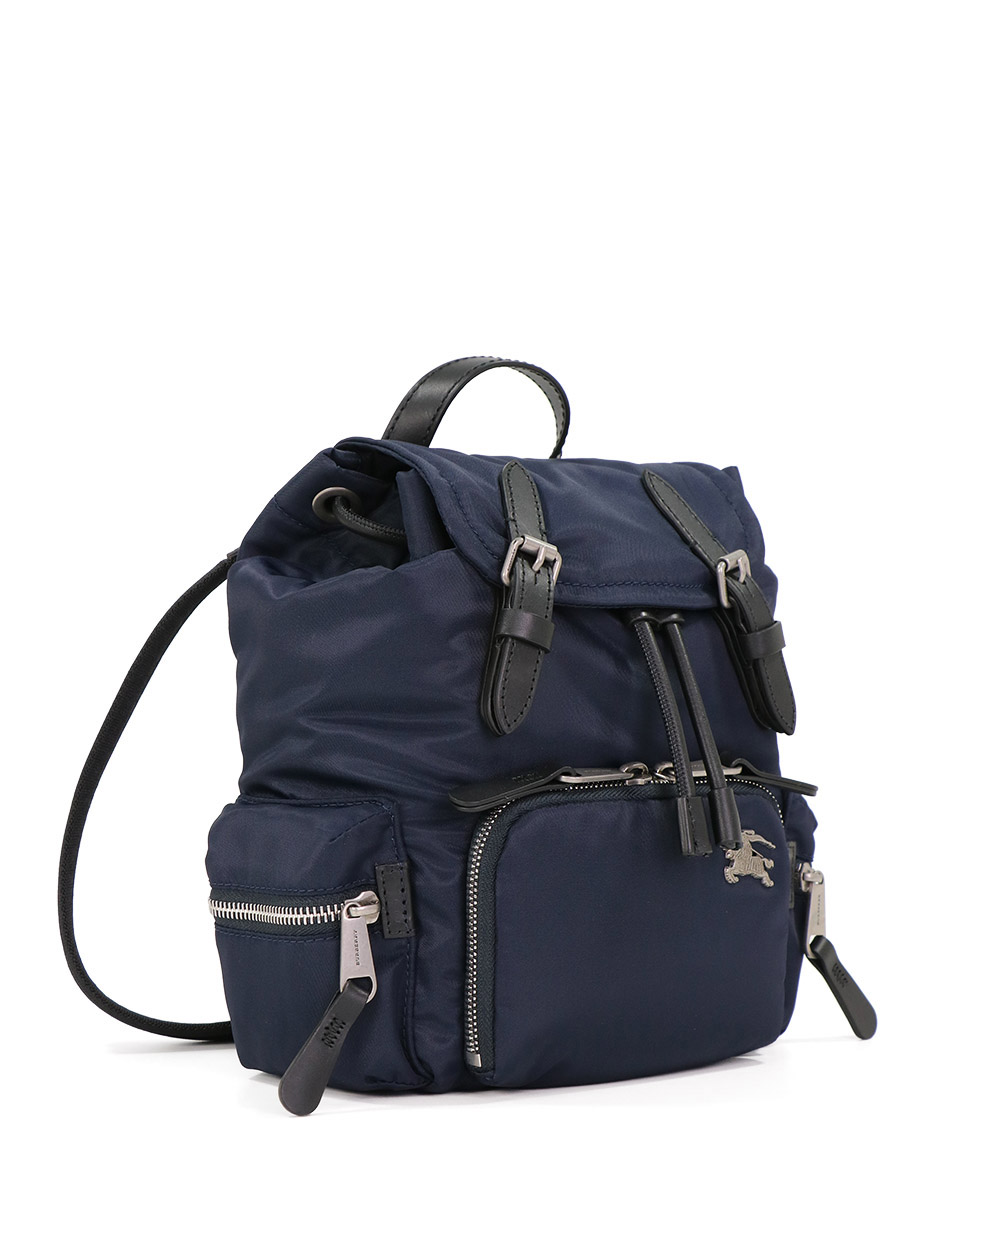 The Rucksack Cotton And Nylon Small Cross-body Military Backpack 1